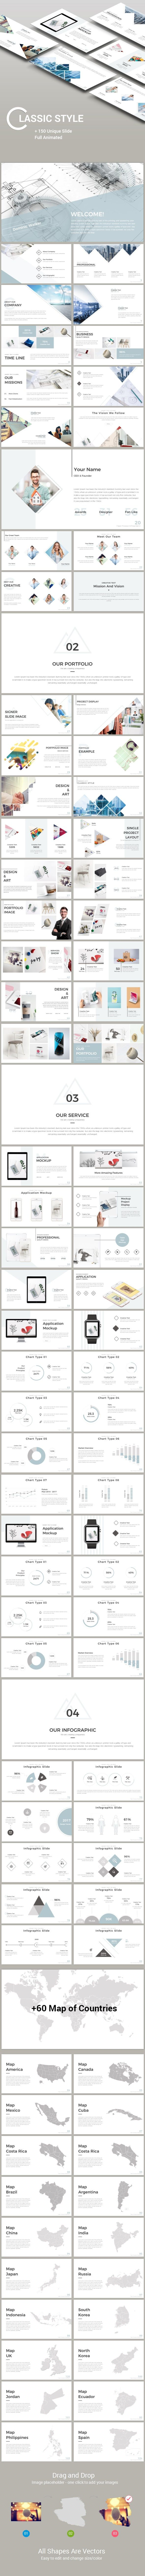 Classic Style Presentation Templates - PowerPoint Templates Presentation Templates